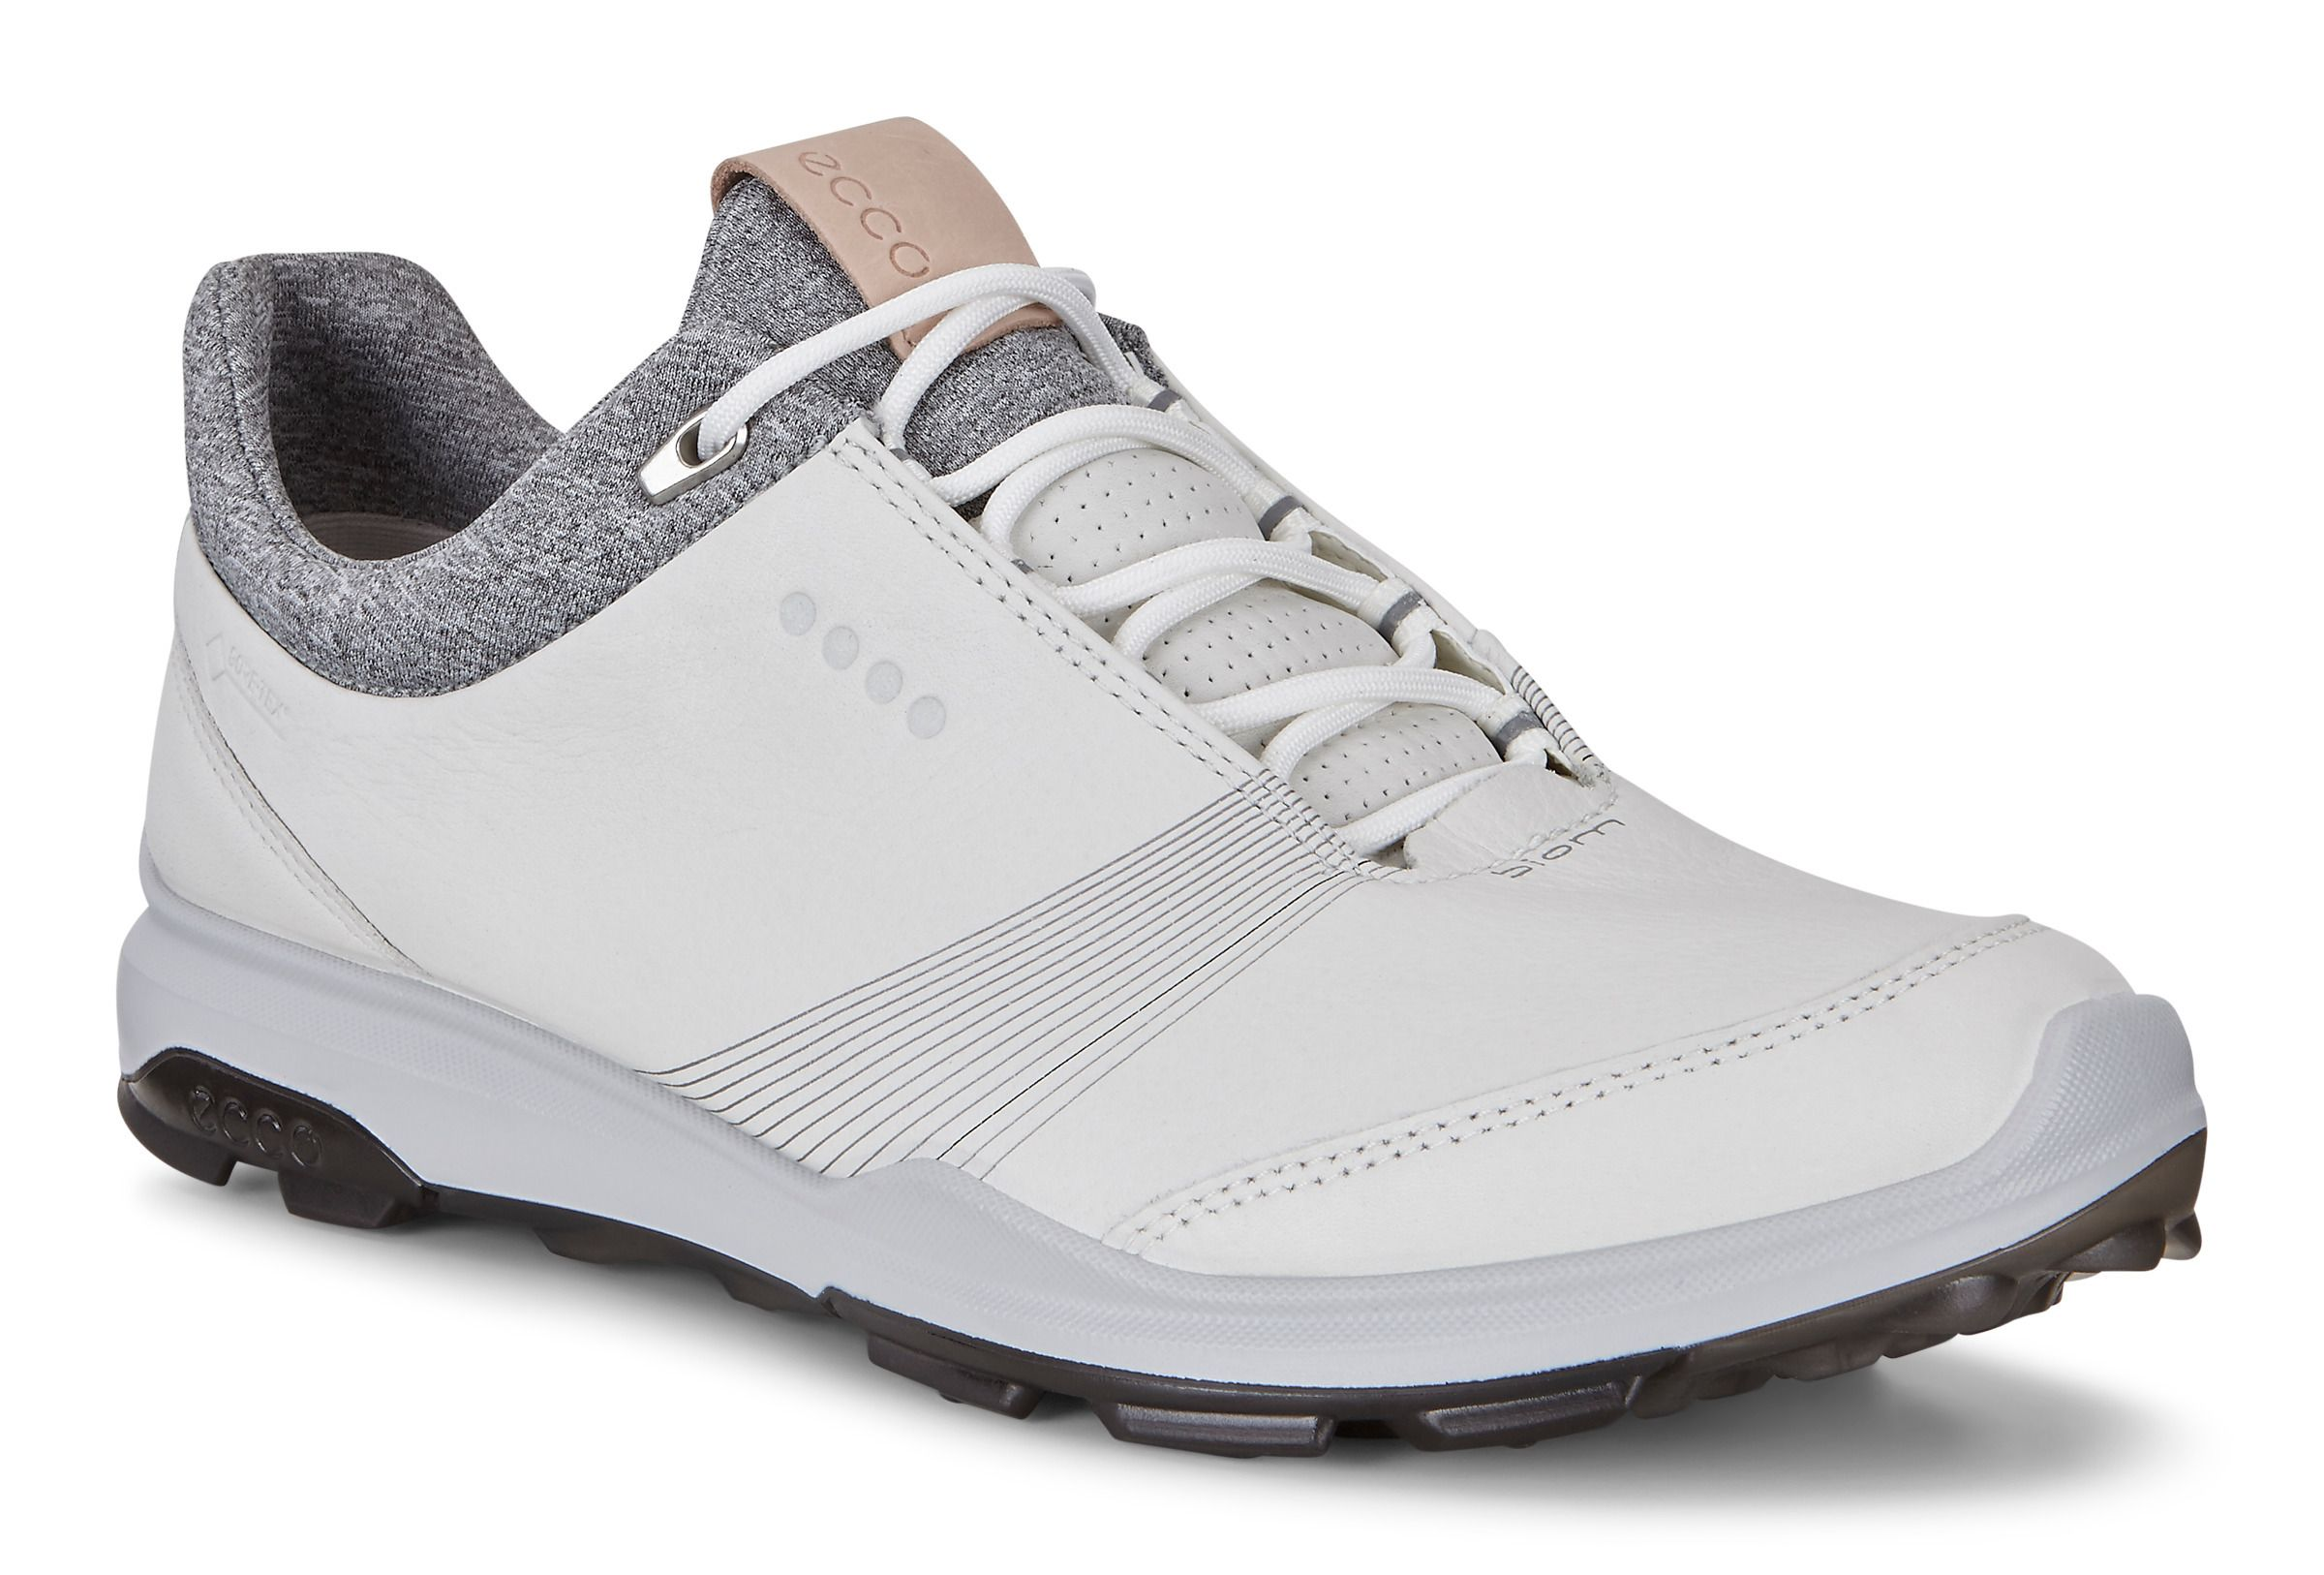 GORE-TEX®. W GOLF BIOM HYBRID 3 (White) ...